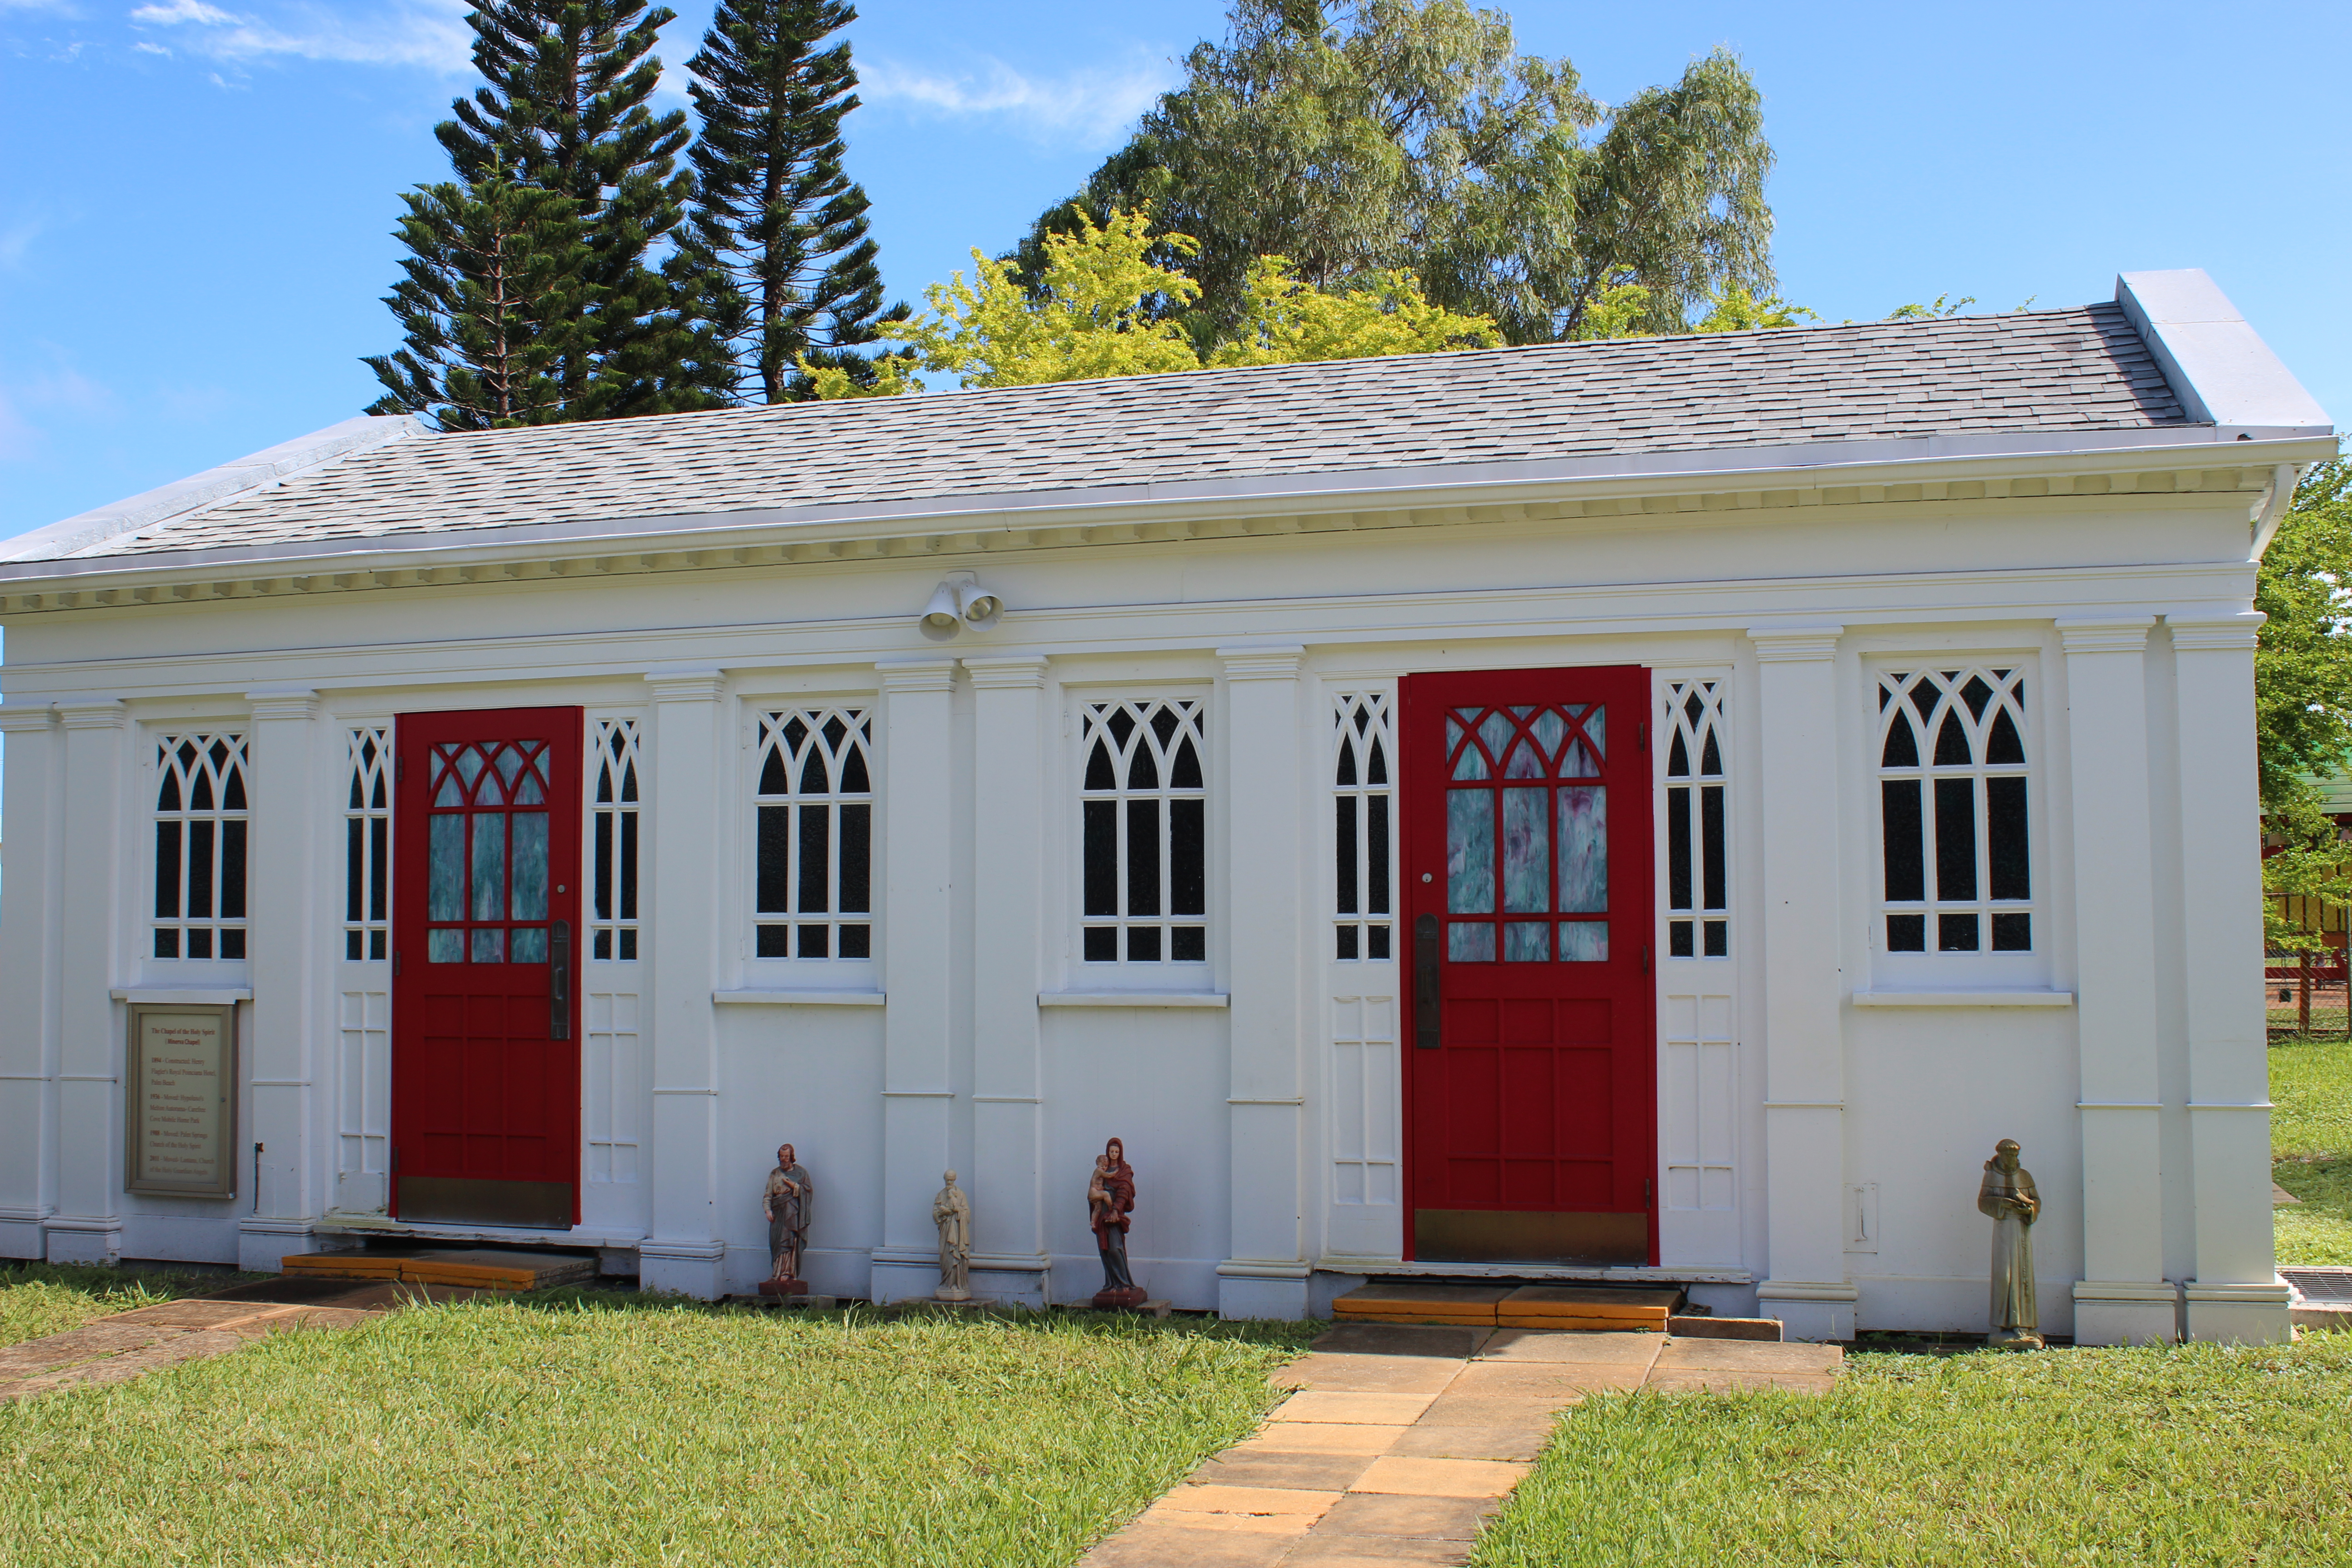 Holy Guardian Angels, Lantana Florida – The Chapel of the Holy Spirit